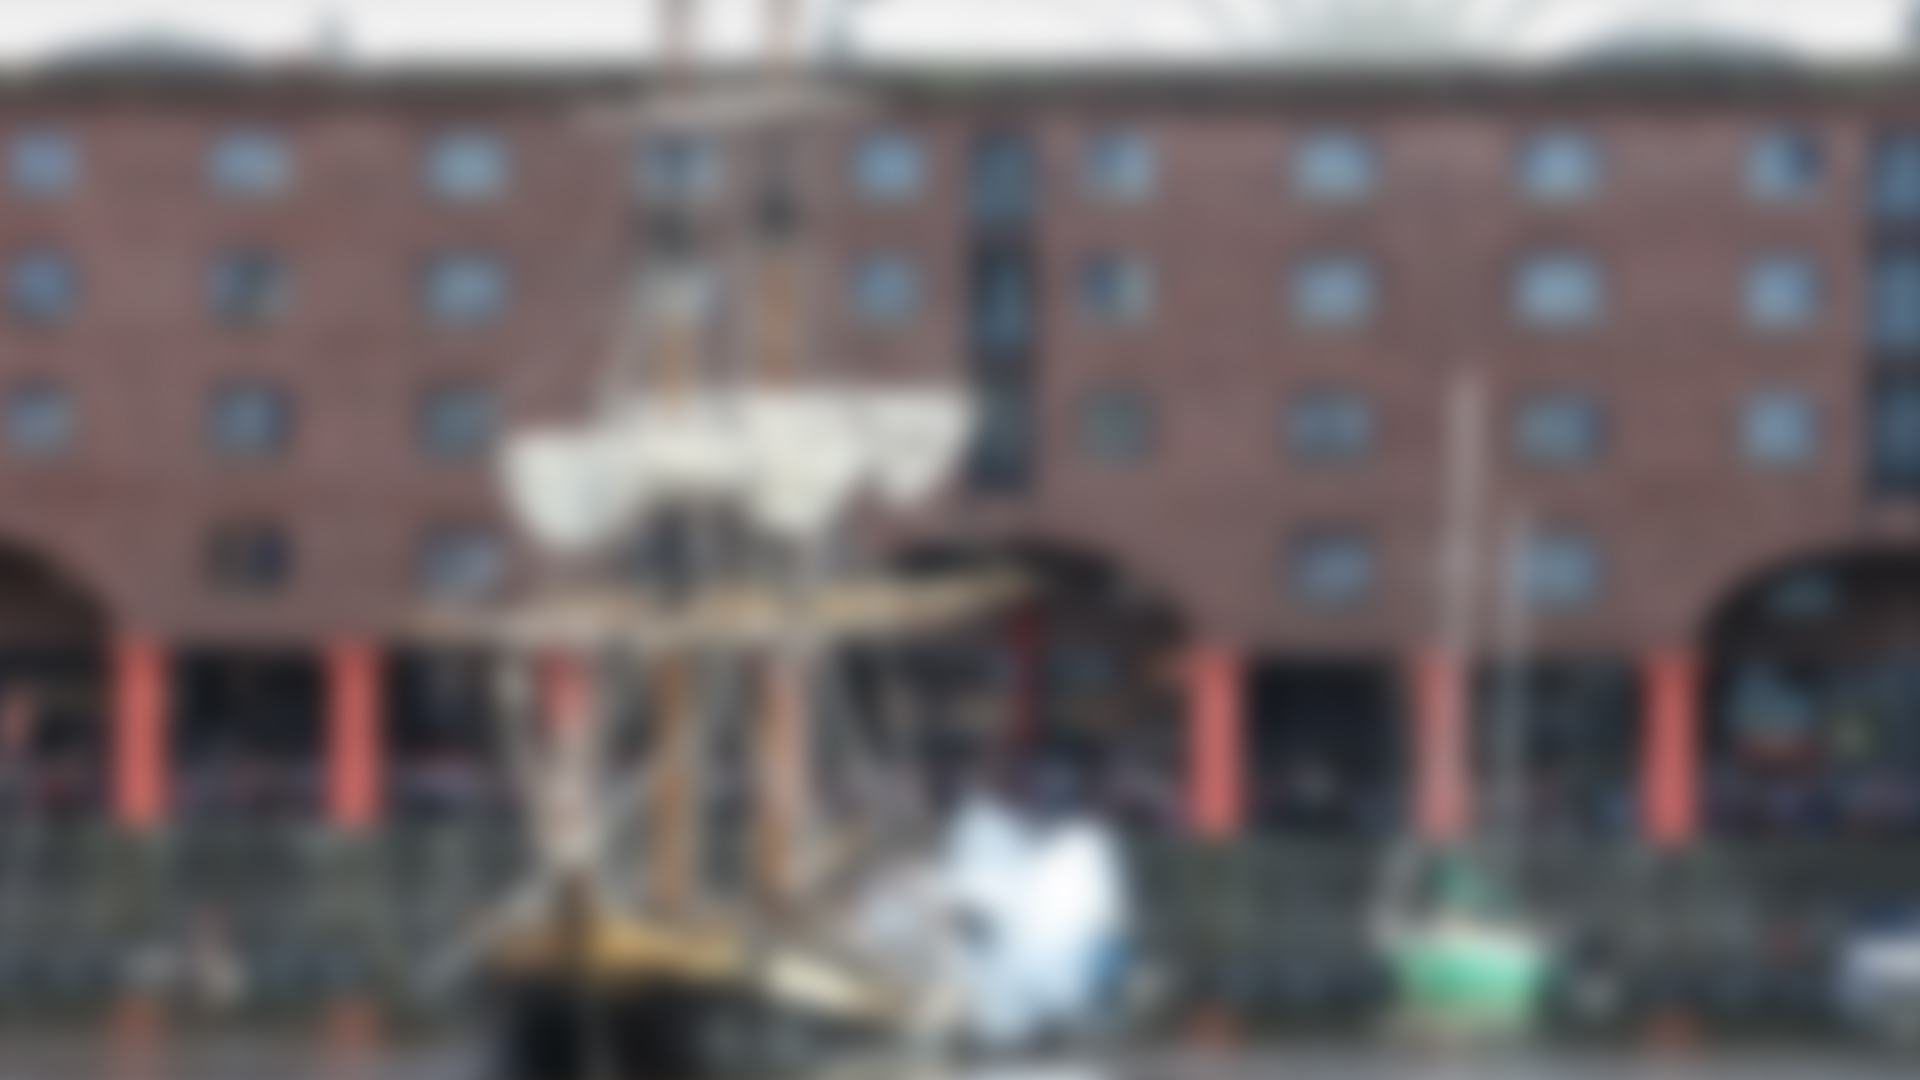 Royal Albert Dock Liverpool reels in new commercial partnership  with John West for Pirates on the Dock